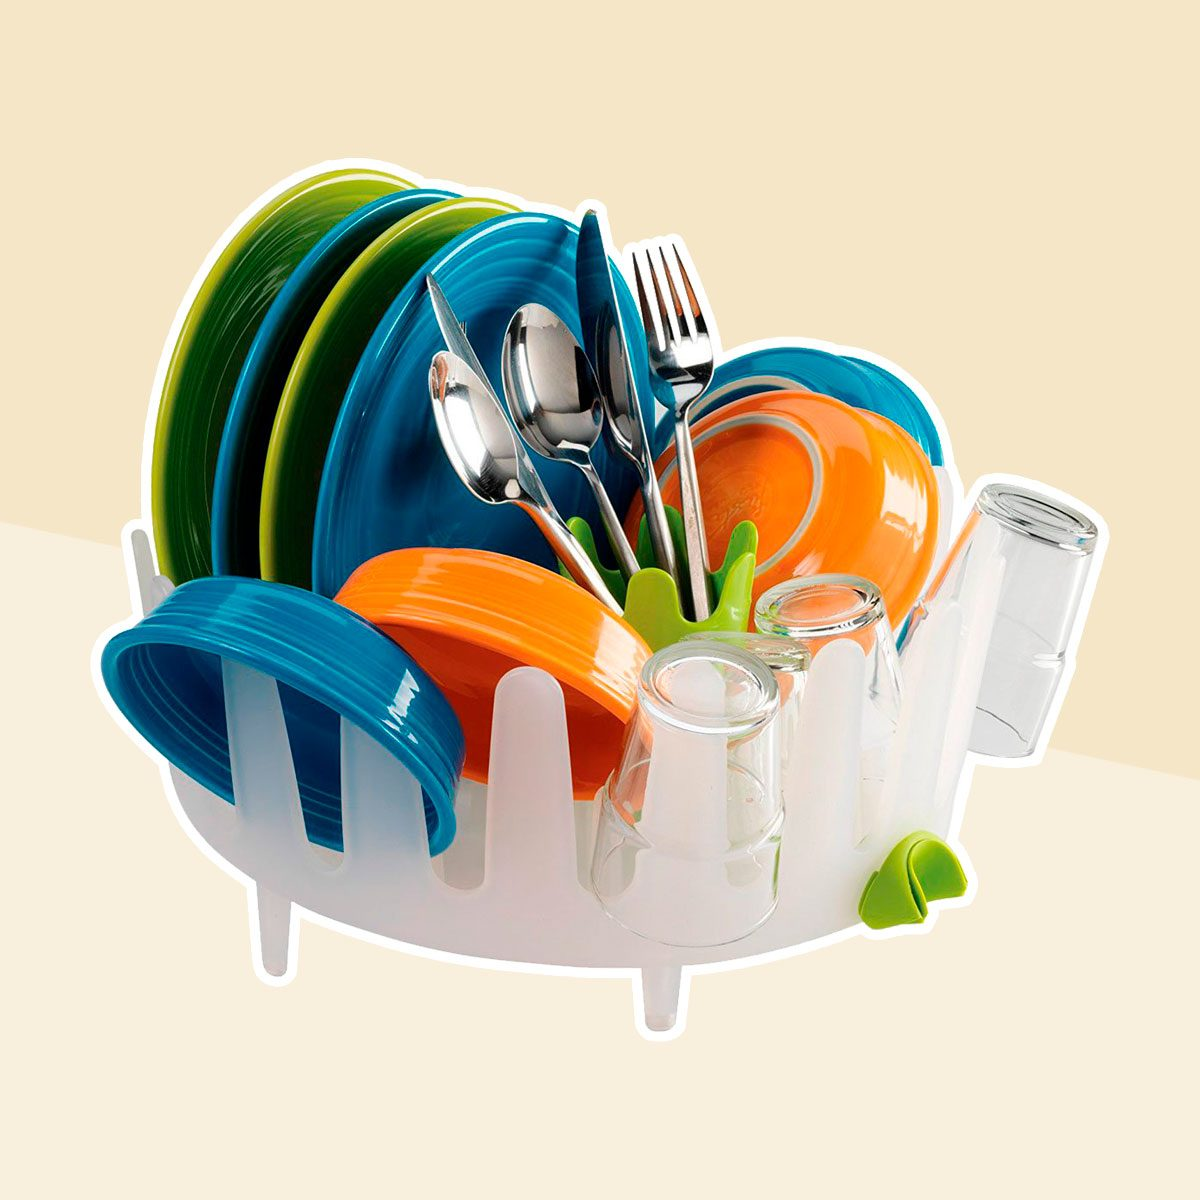 Plastic drying rack for cups